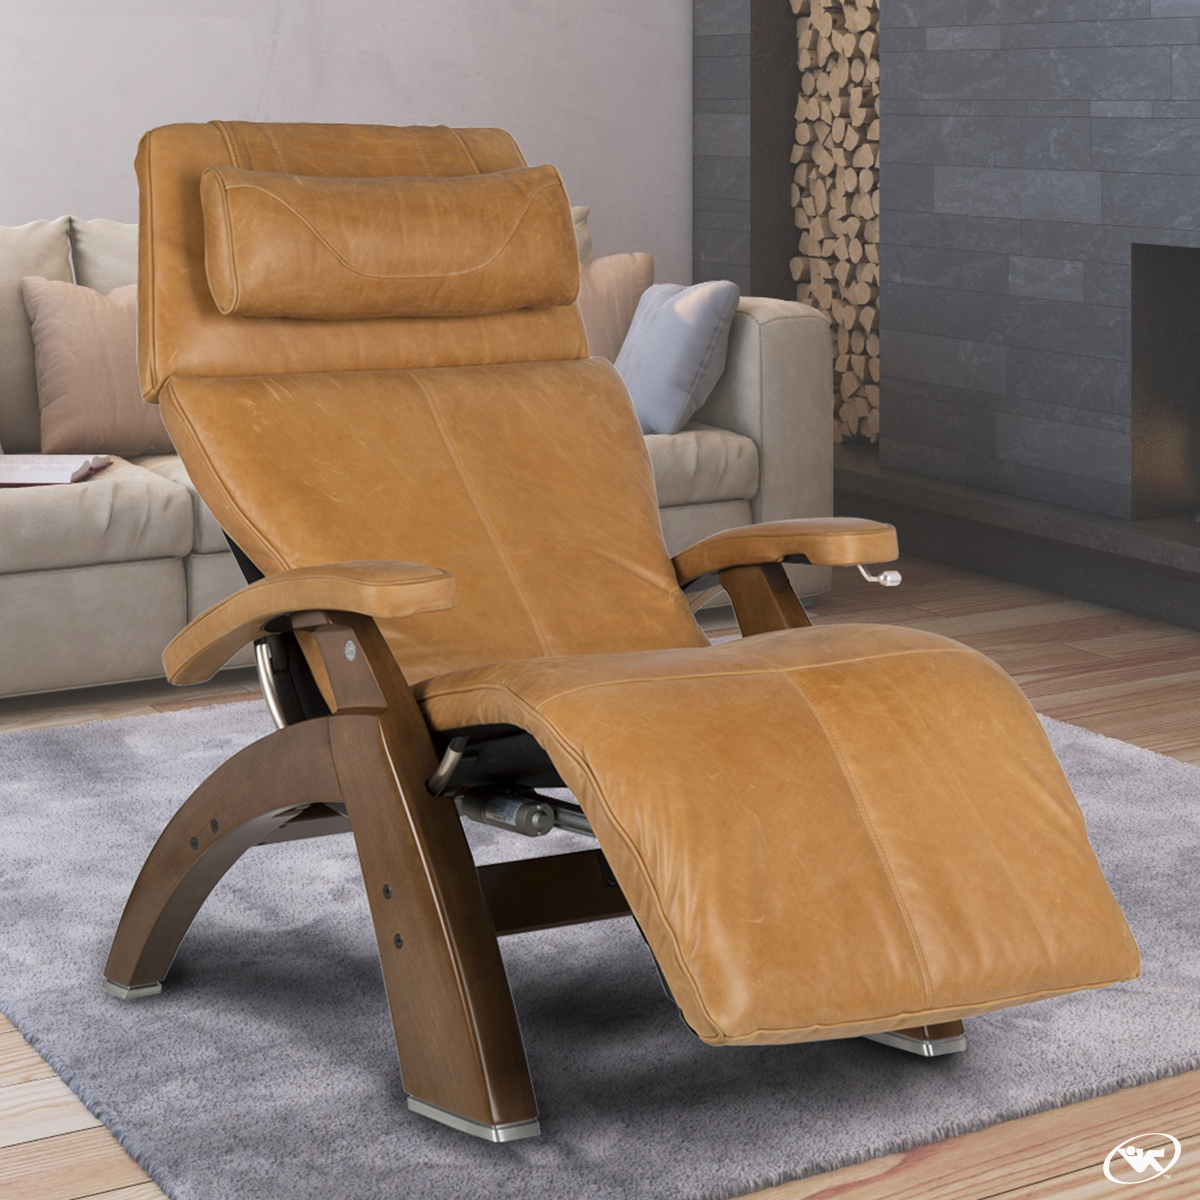 Perfect for any home save on a premium leather perfect chair